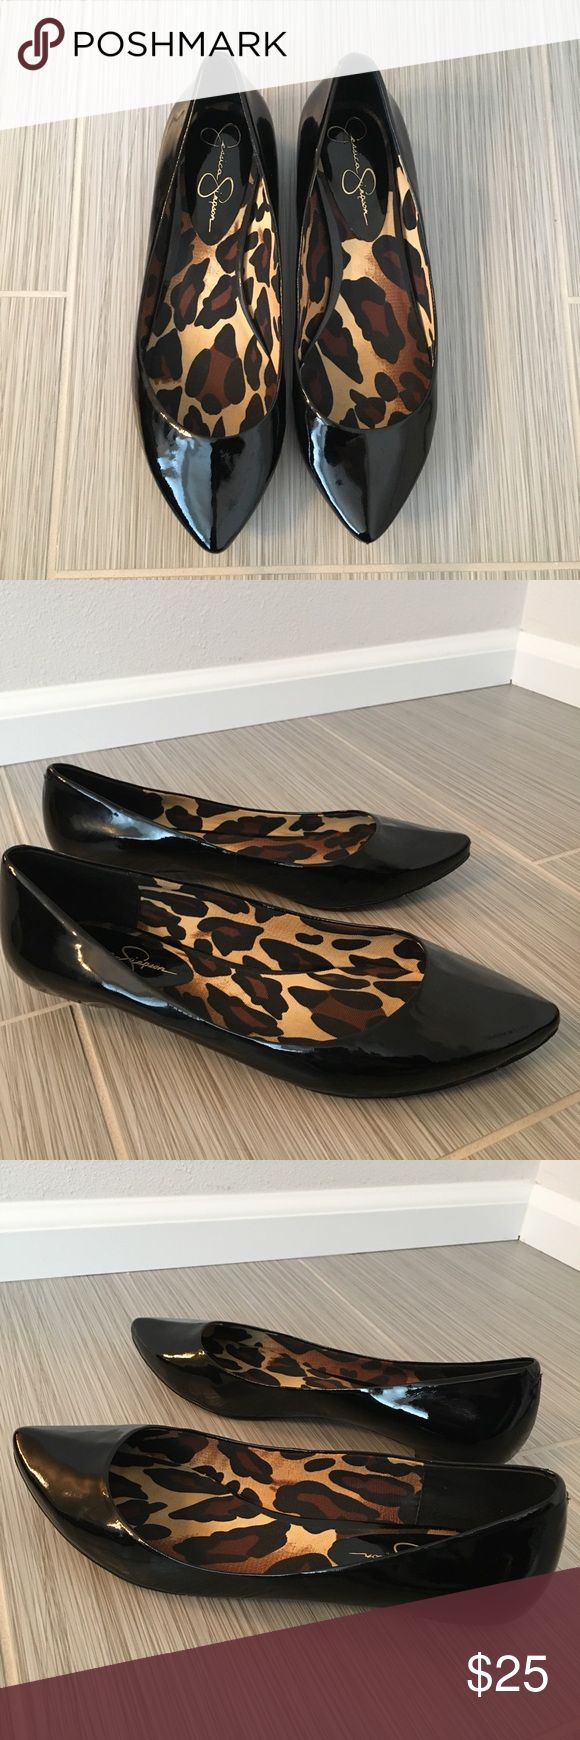 """Jessica Simpson flats Jessica Simpson flats in patent black with a pointed toe and fun cheetah lining. Perfect every day shoe! Leather Upper.Synthetic sole.Heel measures approximately 1/2"""" OFFERS WELCOME 😊 Jessica Simpson Shoes Flats & Loafers"""